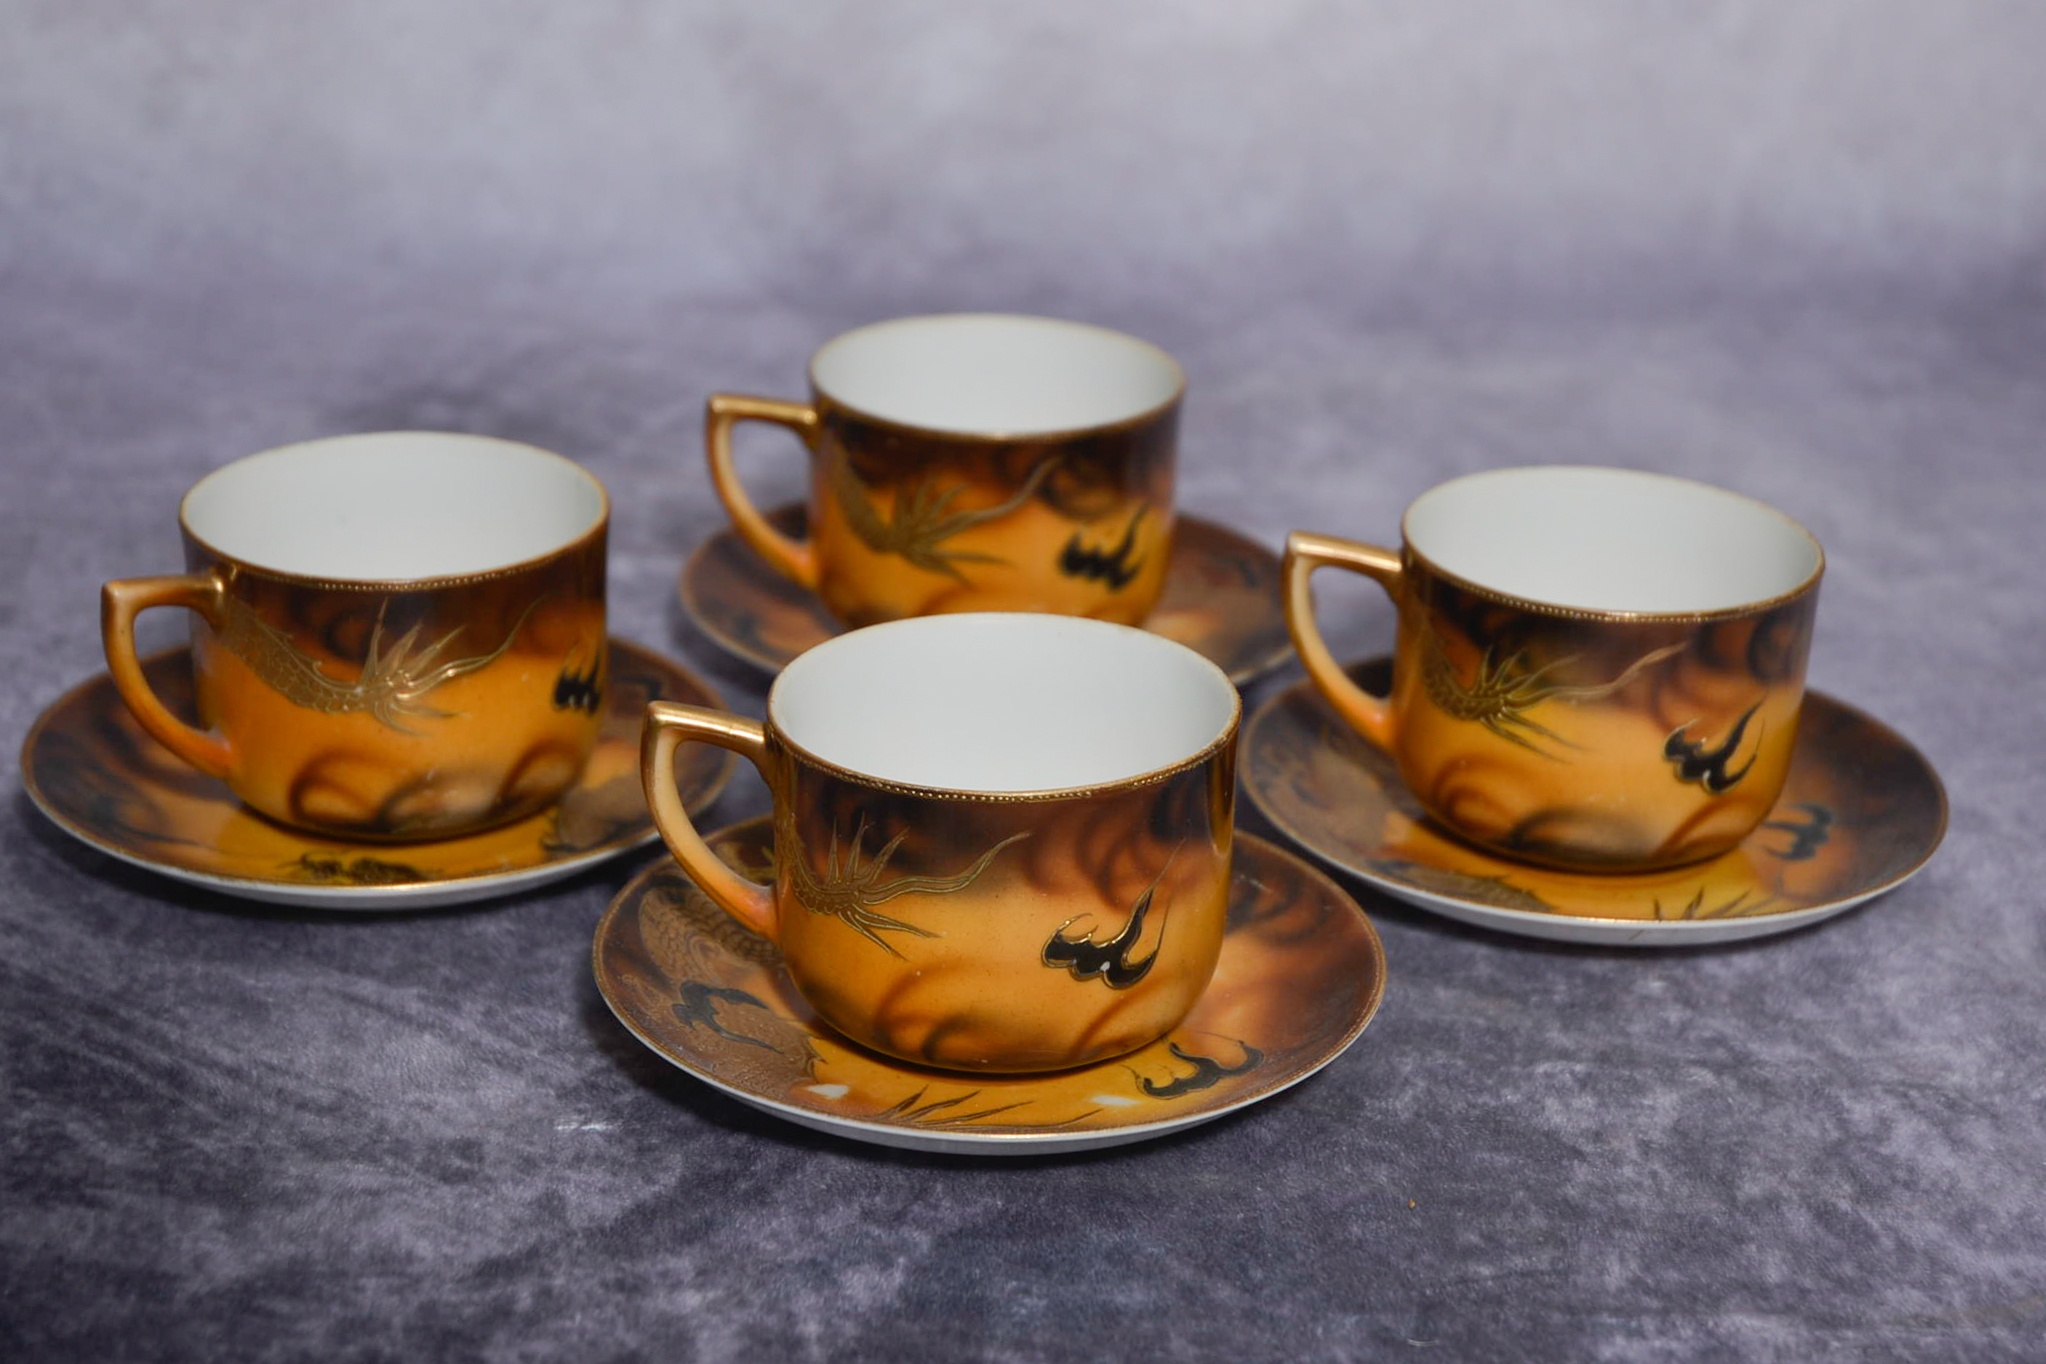 Set of four Japanese cups and saucers - Image 2 of 2